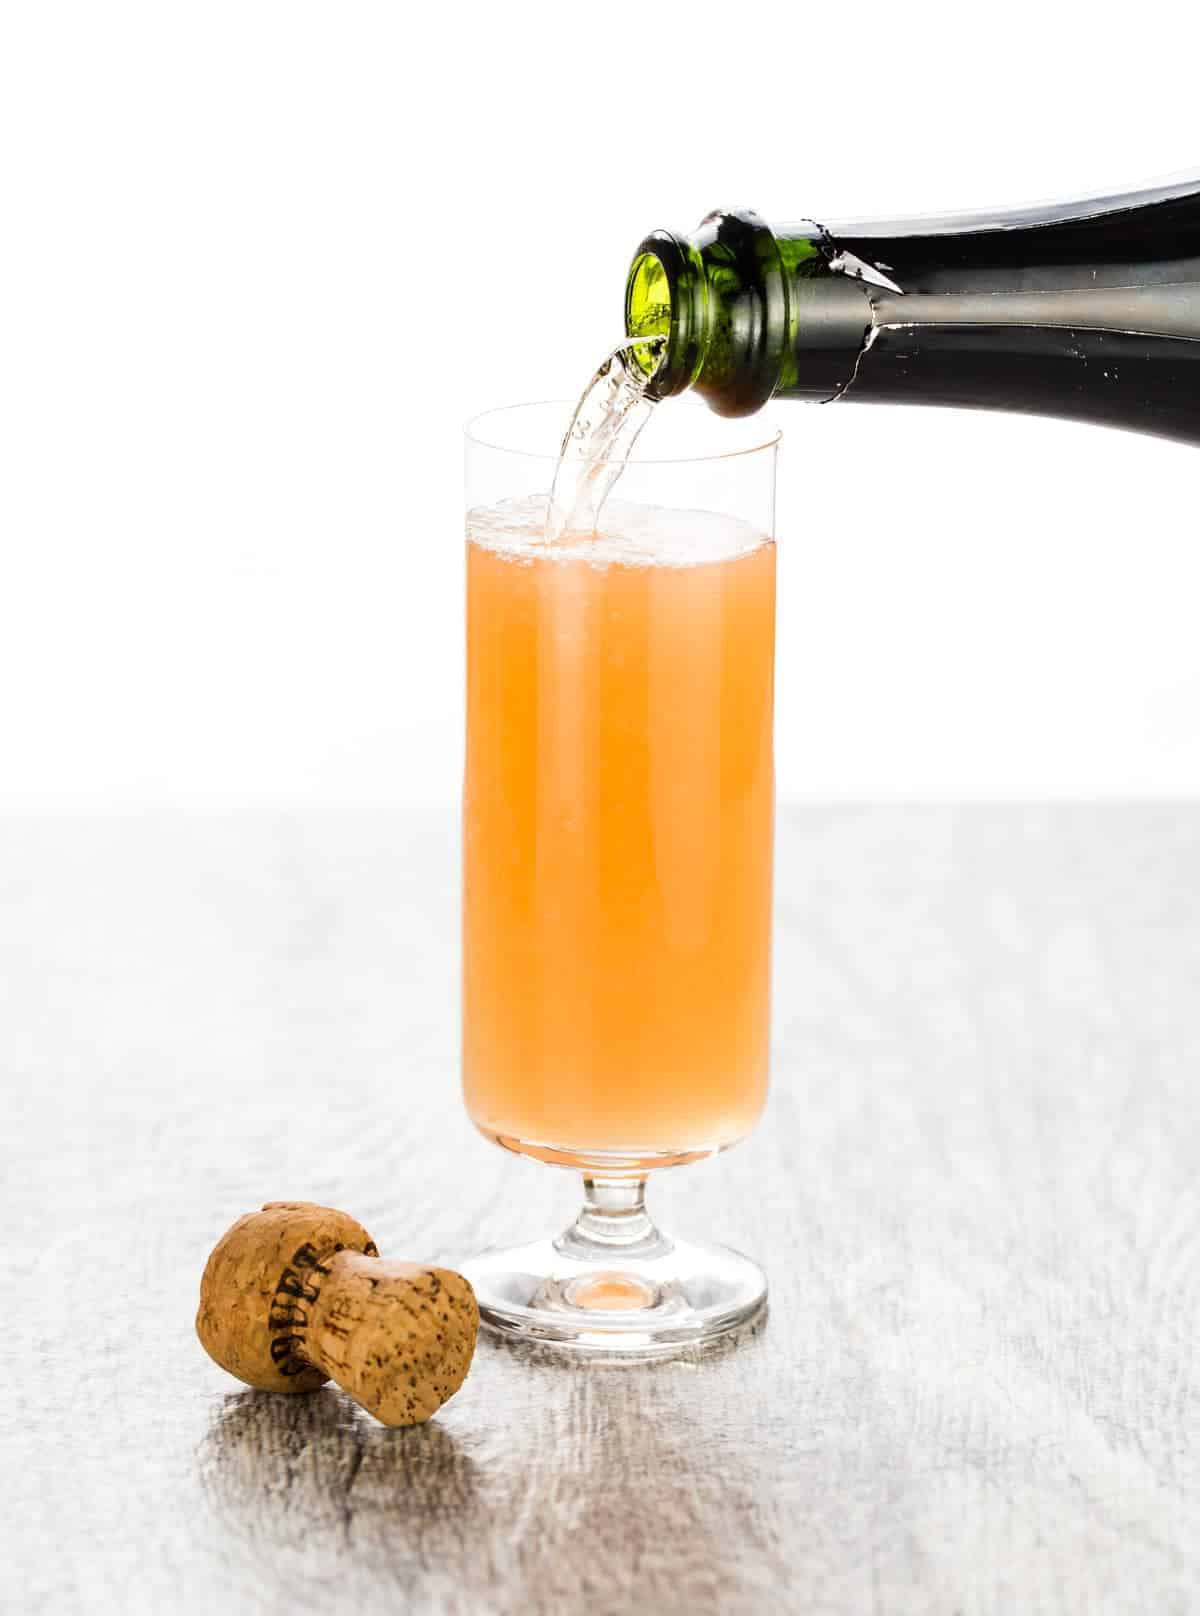 If you aren't hosting Sunday brunch soon, you'll find a reason to after you try this Mexican Mimosa. Tequila is the secret ingredient that takes the mimosa to another level.